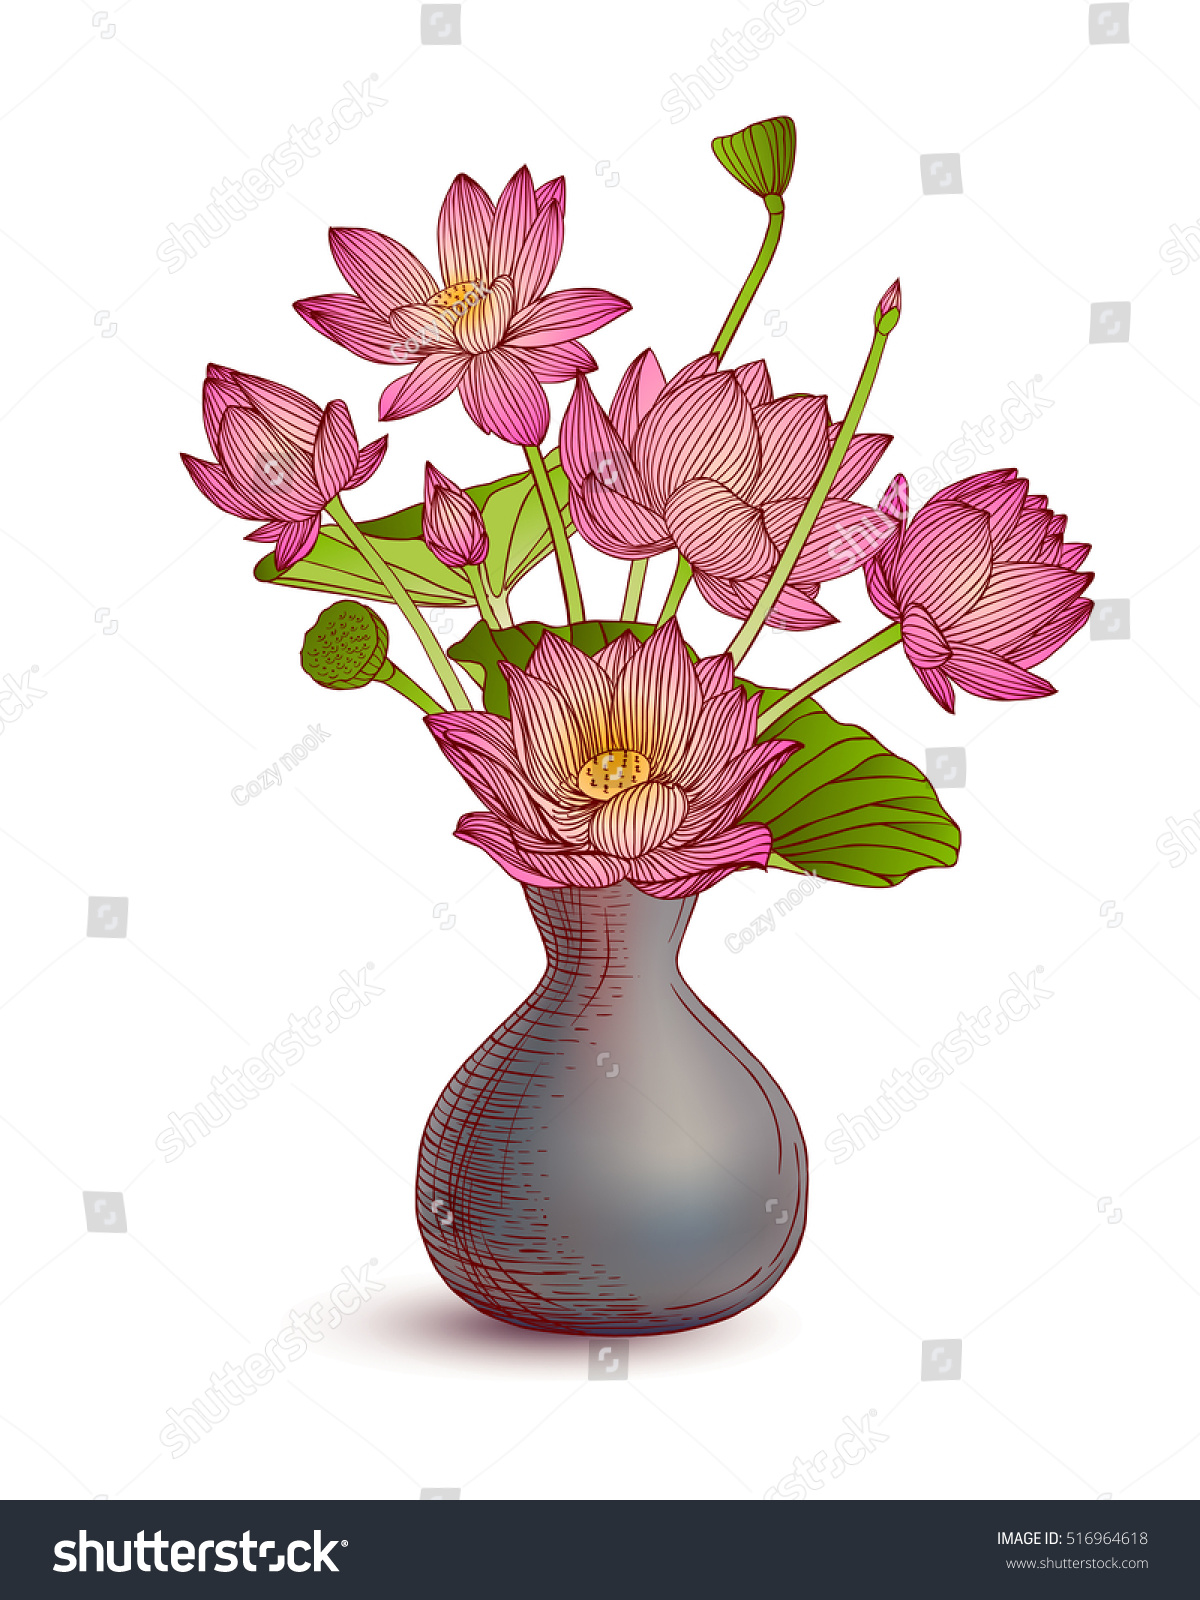 Vase Lotus Flowers On White Background Stock Vector Royalty Free